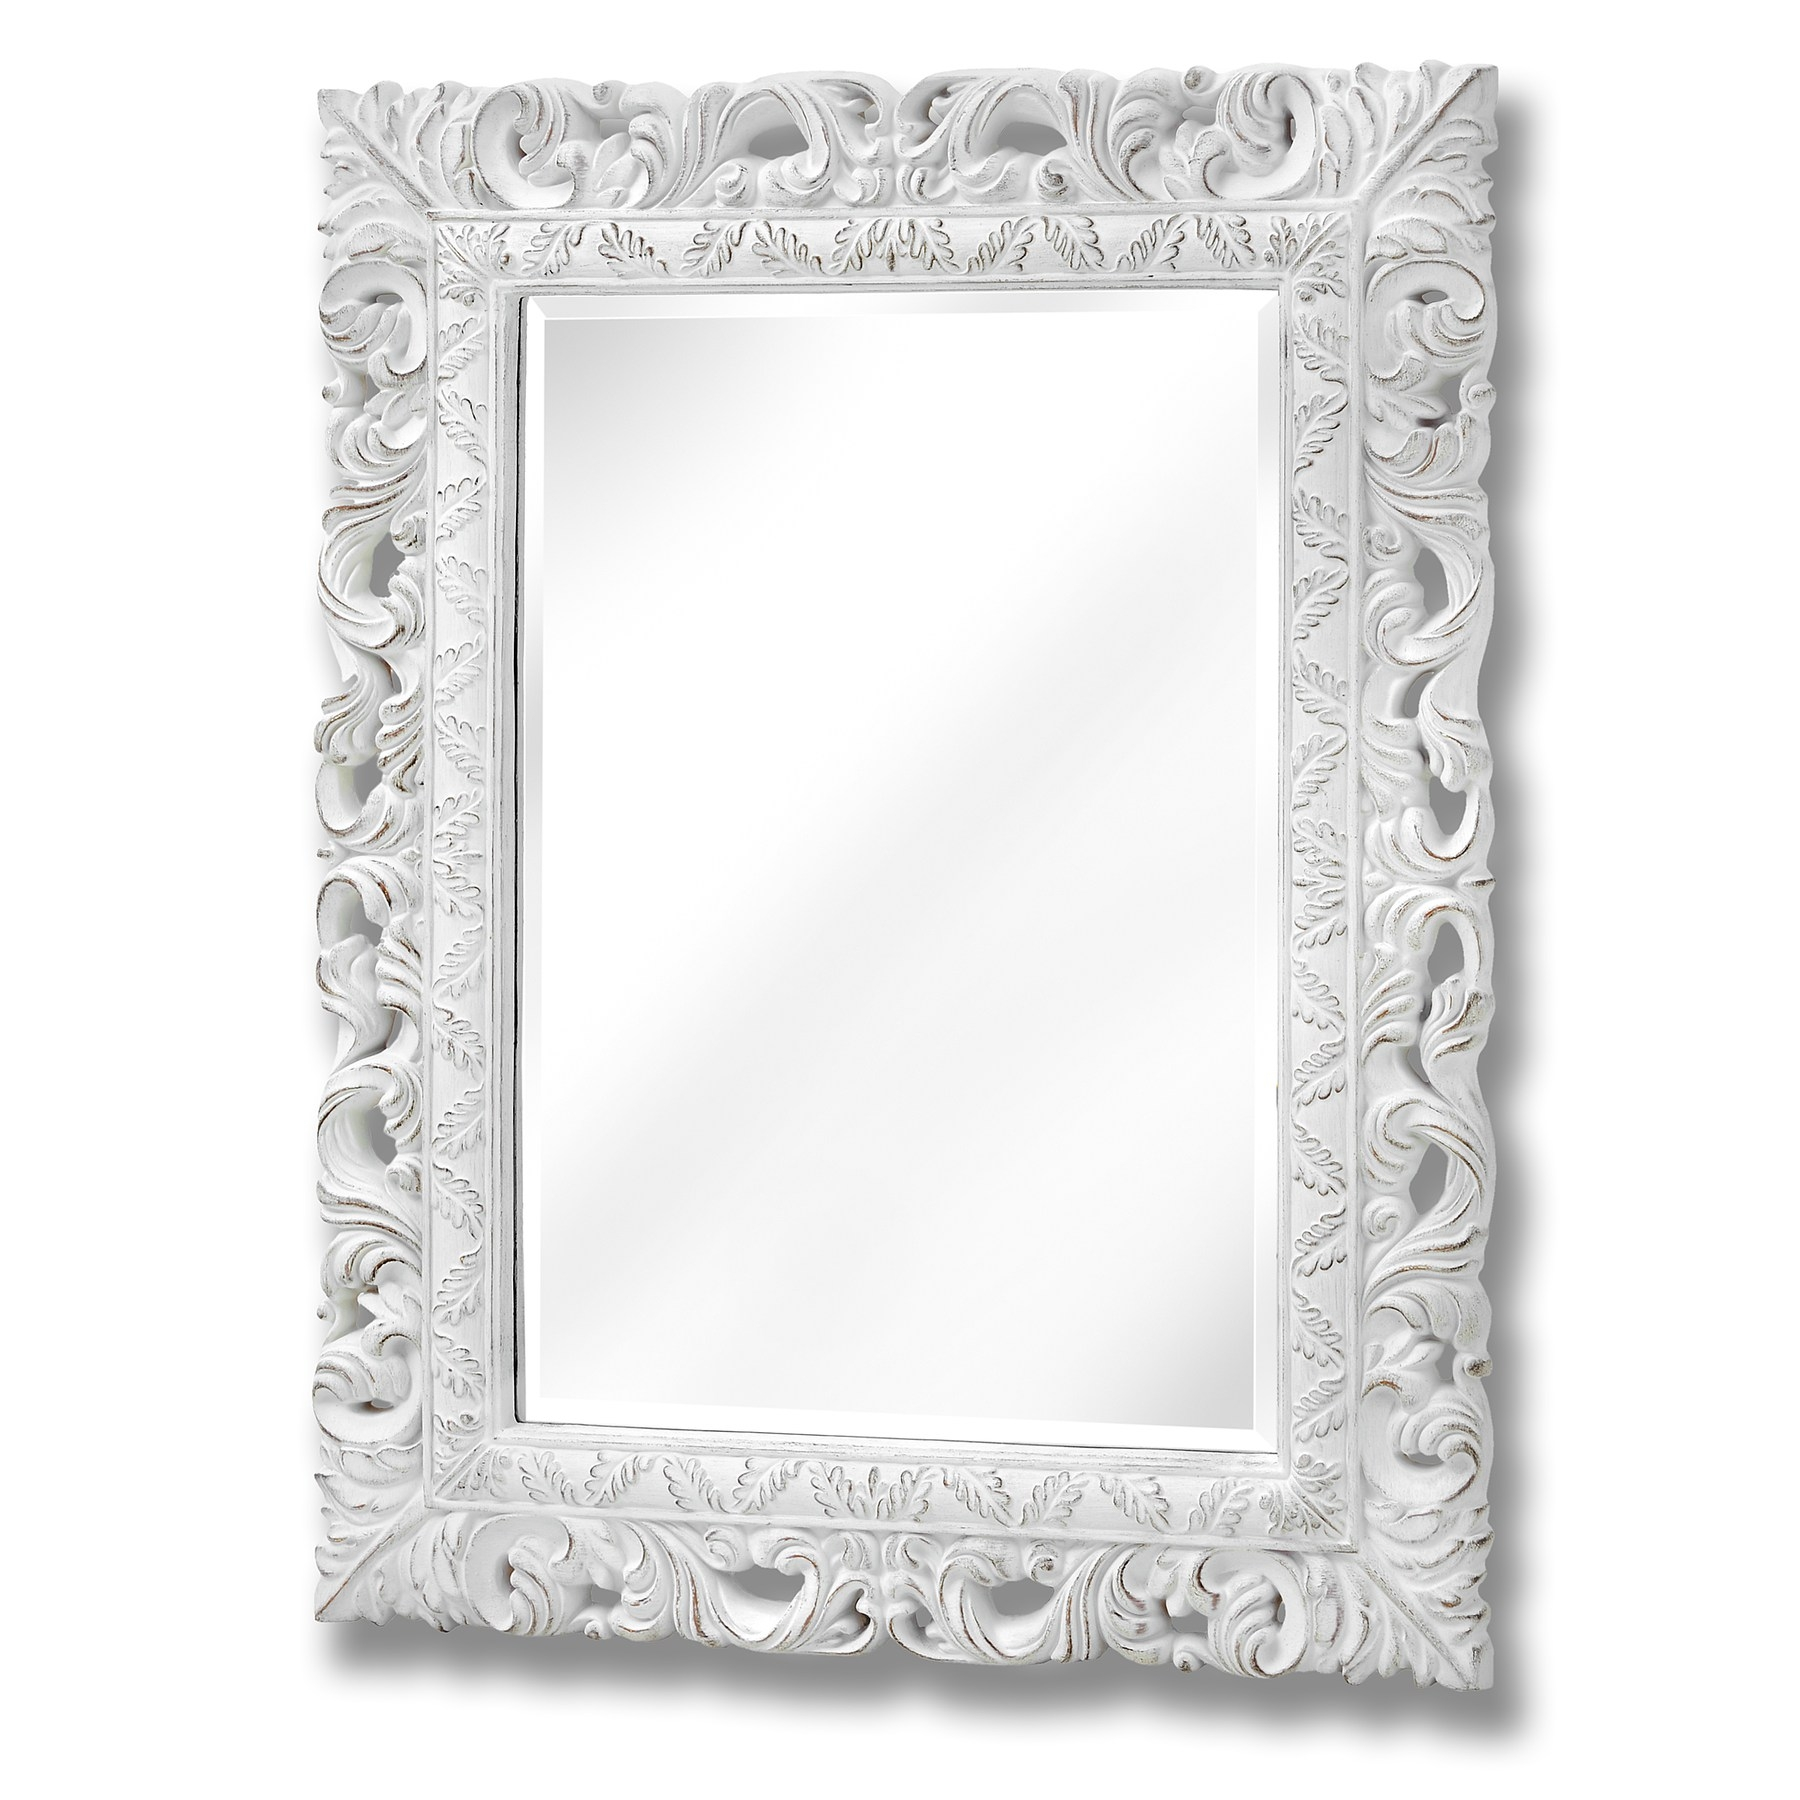 Antique White Ornate Leaf Wall Mirror From Hill Interiors For White Ornate Mirror (Image 3 of 15)